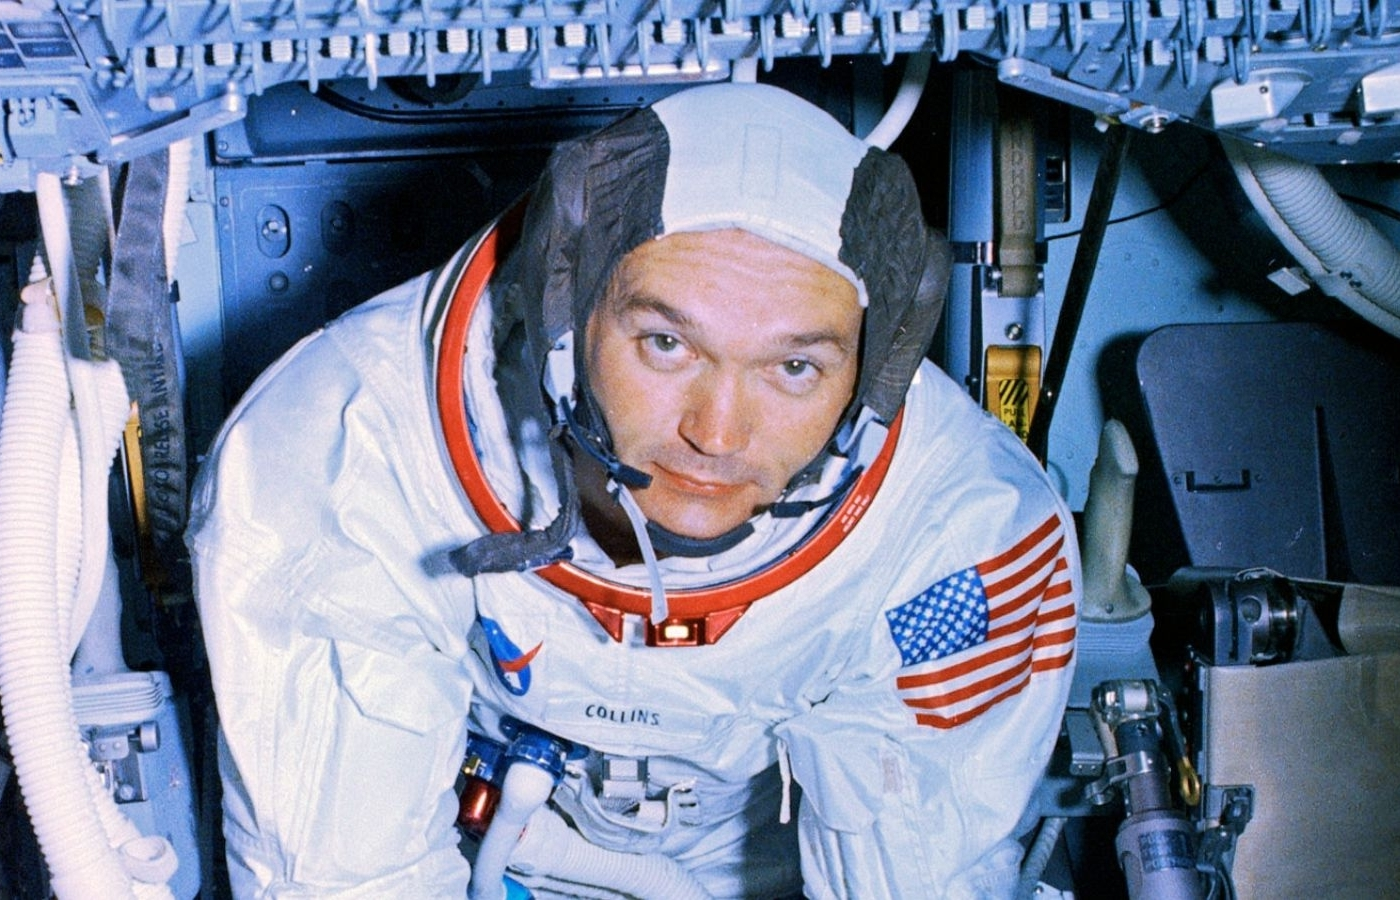 Who is Michael Collins: Biography, Astronauts Career and Legacy